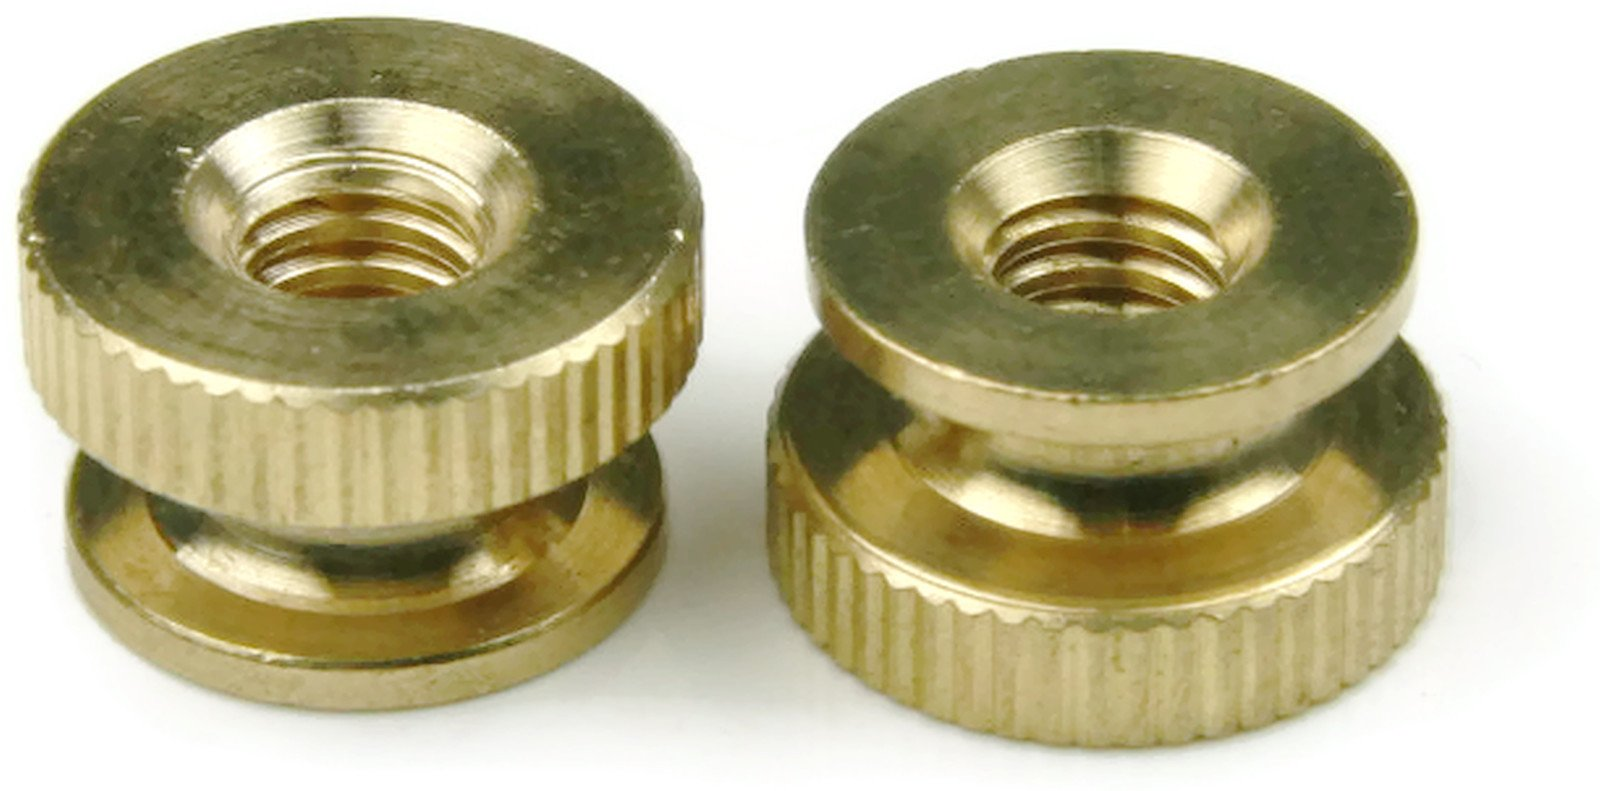 Knurled Thumb Nut Brass - 5/16-18 (11/16 Dia x 13/32 Thick) Qty-25 by RAW PRODUCTS CORP